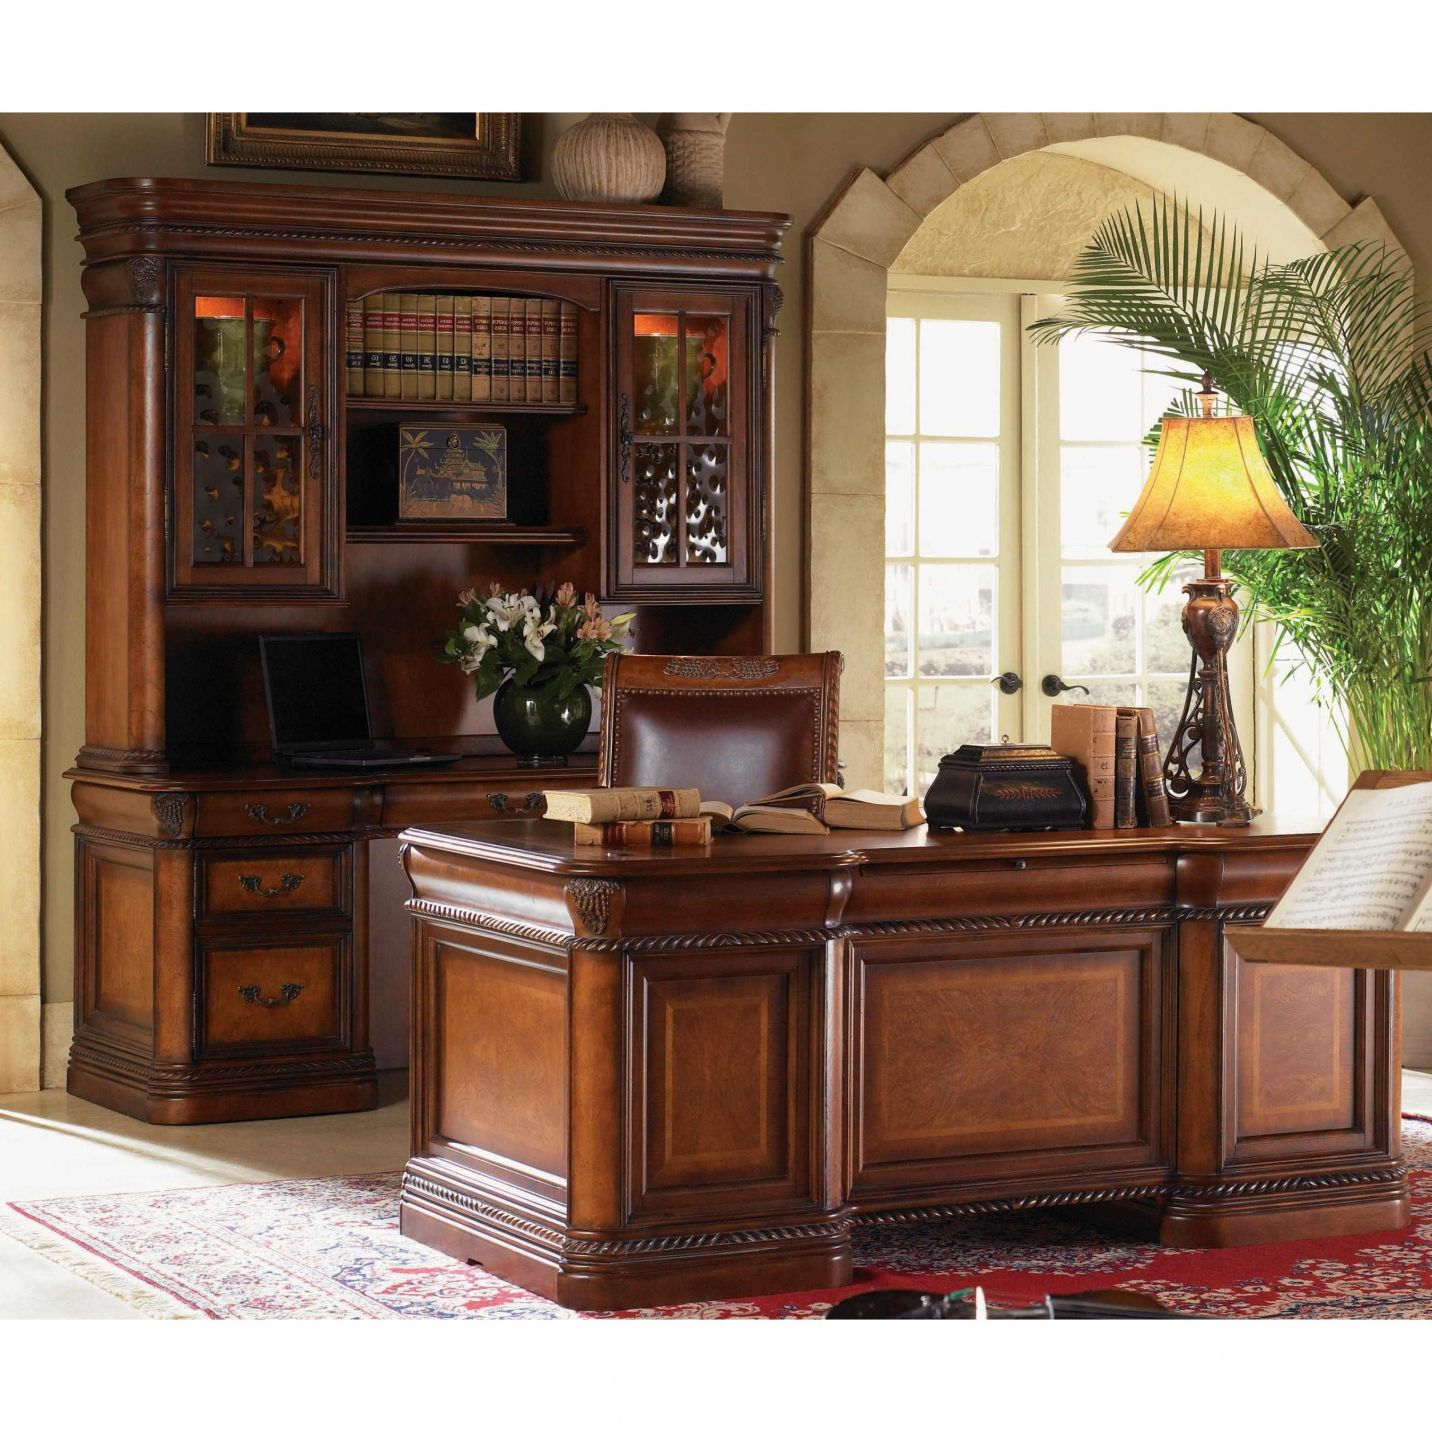 Luxury Office Desk Expensive Home Office Furniture Check More At Http Michael Malarkey Com Luxury Office Desk